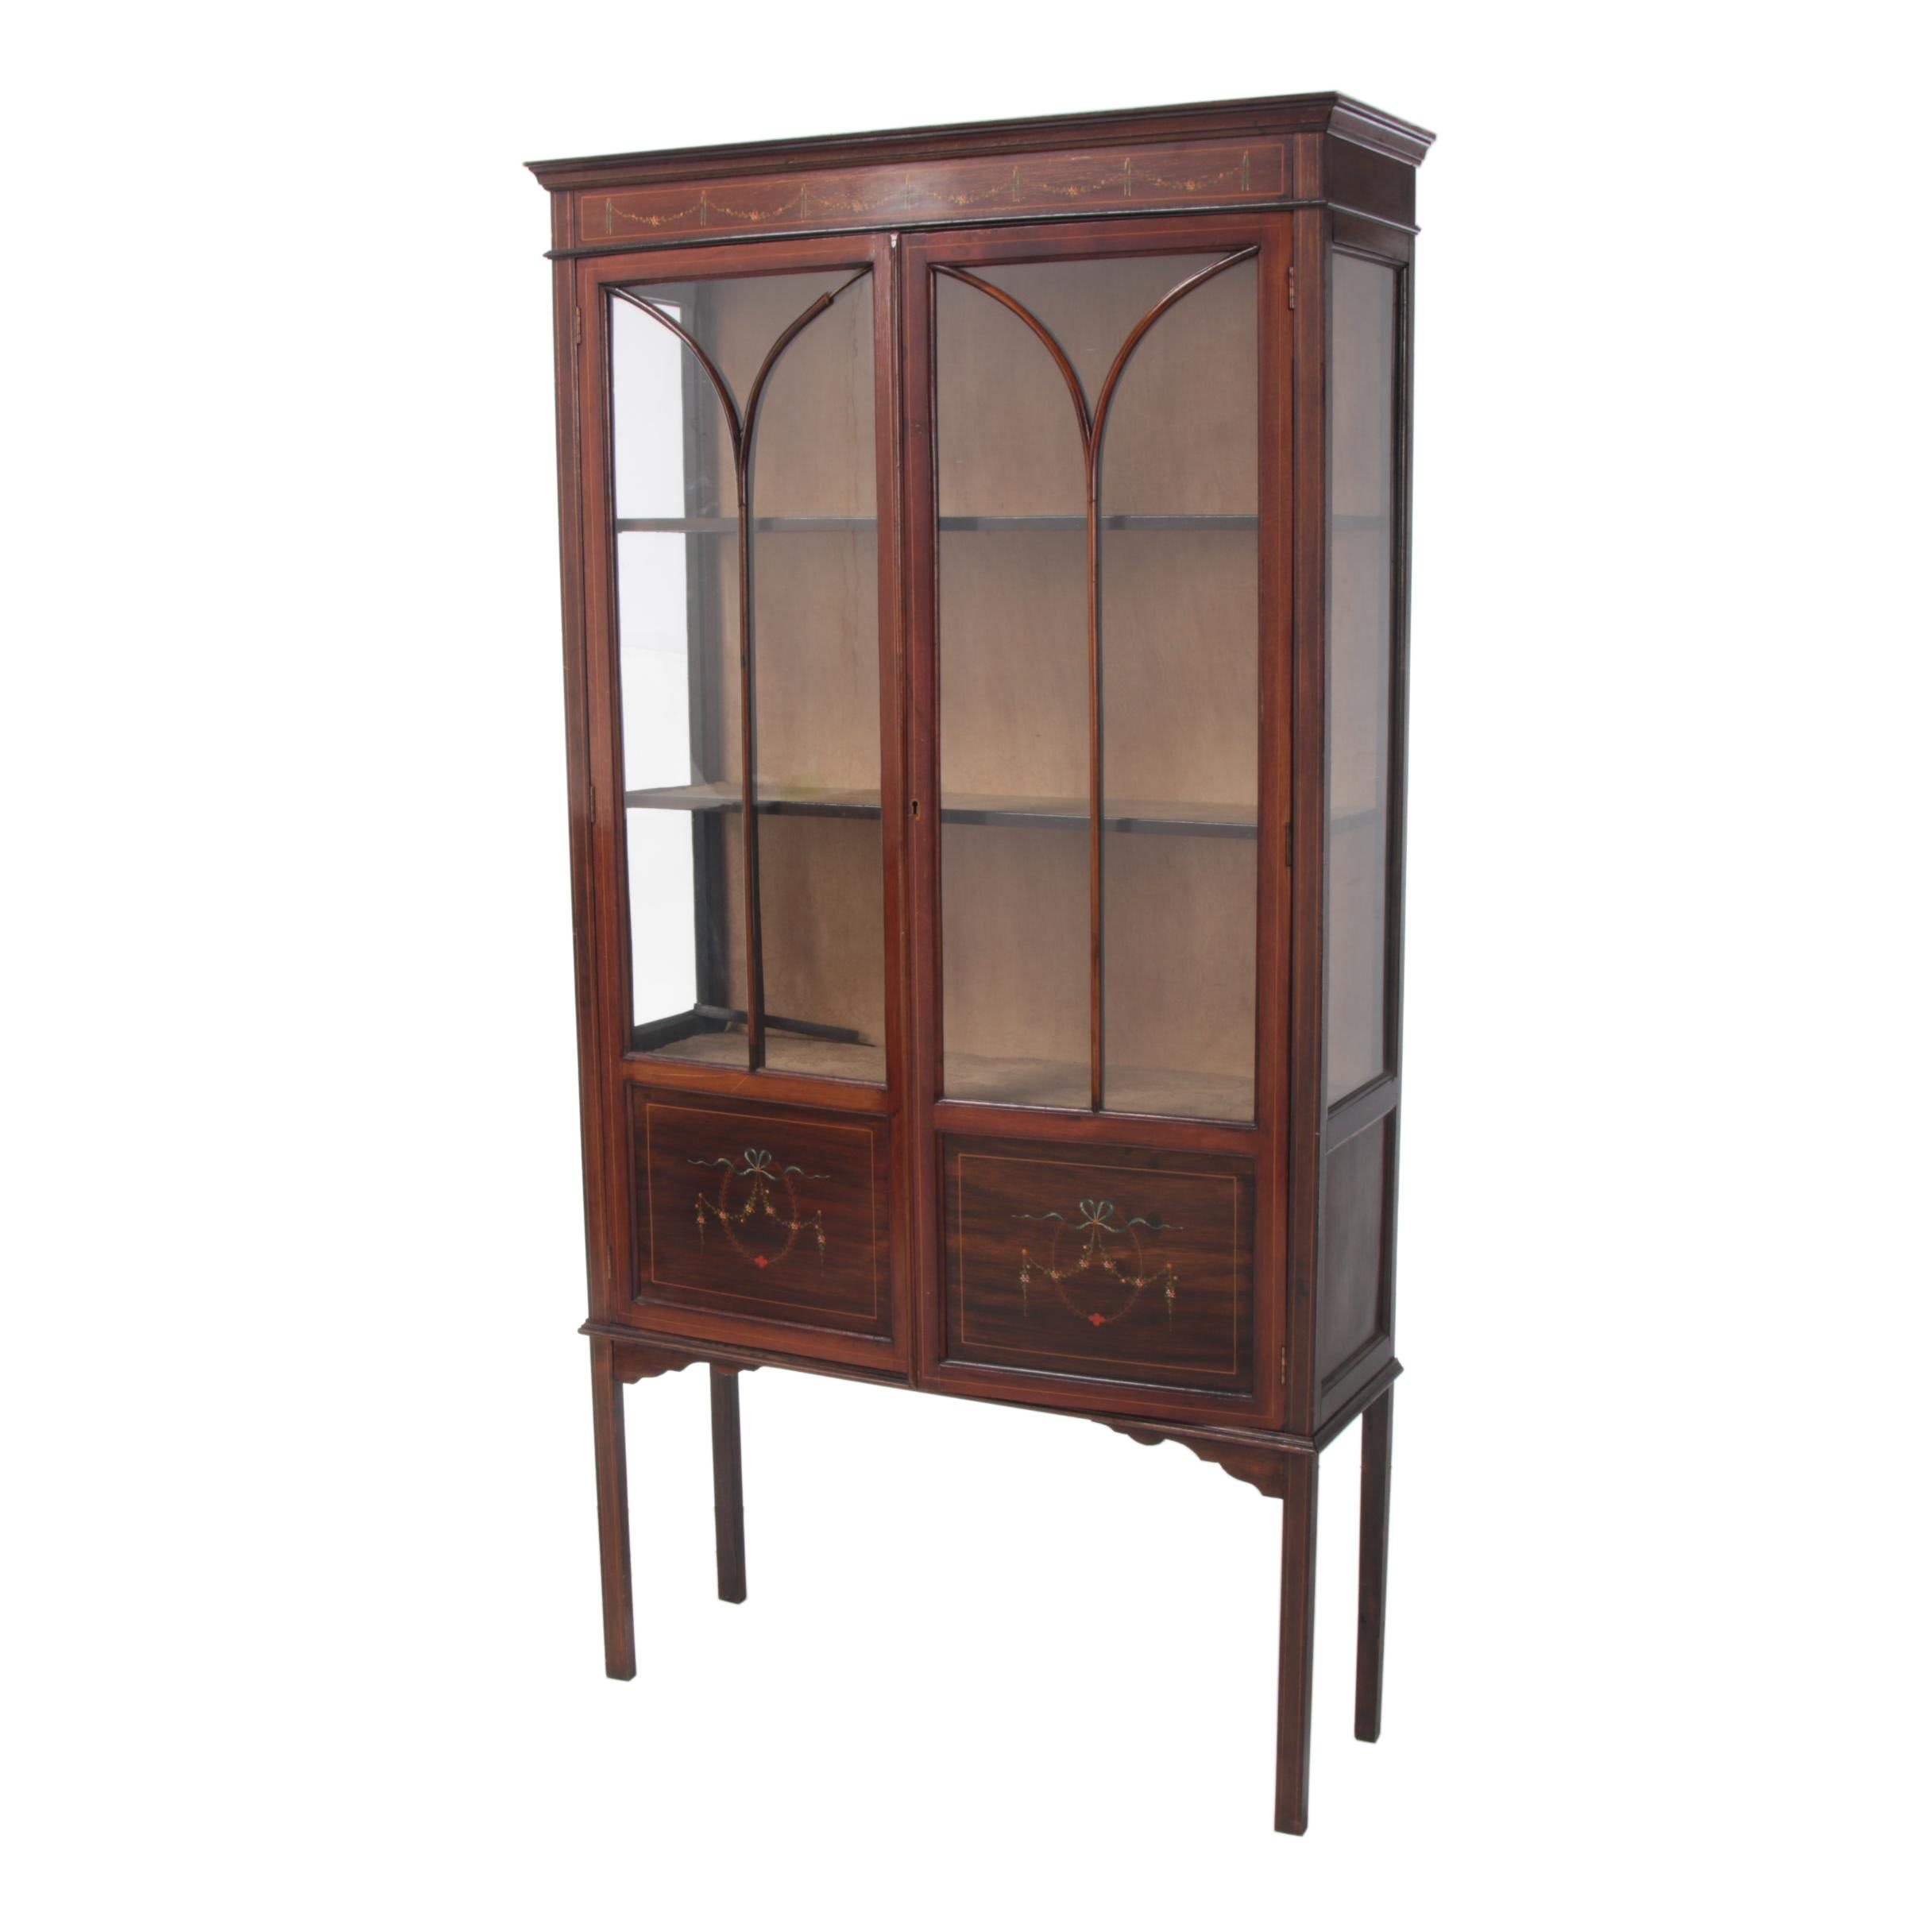 Edwardian String-Inlaid and Paint-Decorated Display Cabinet, Early 20th Century